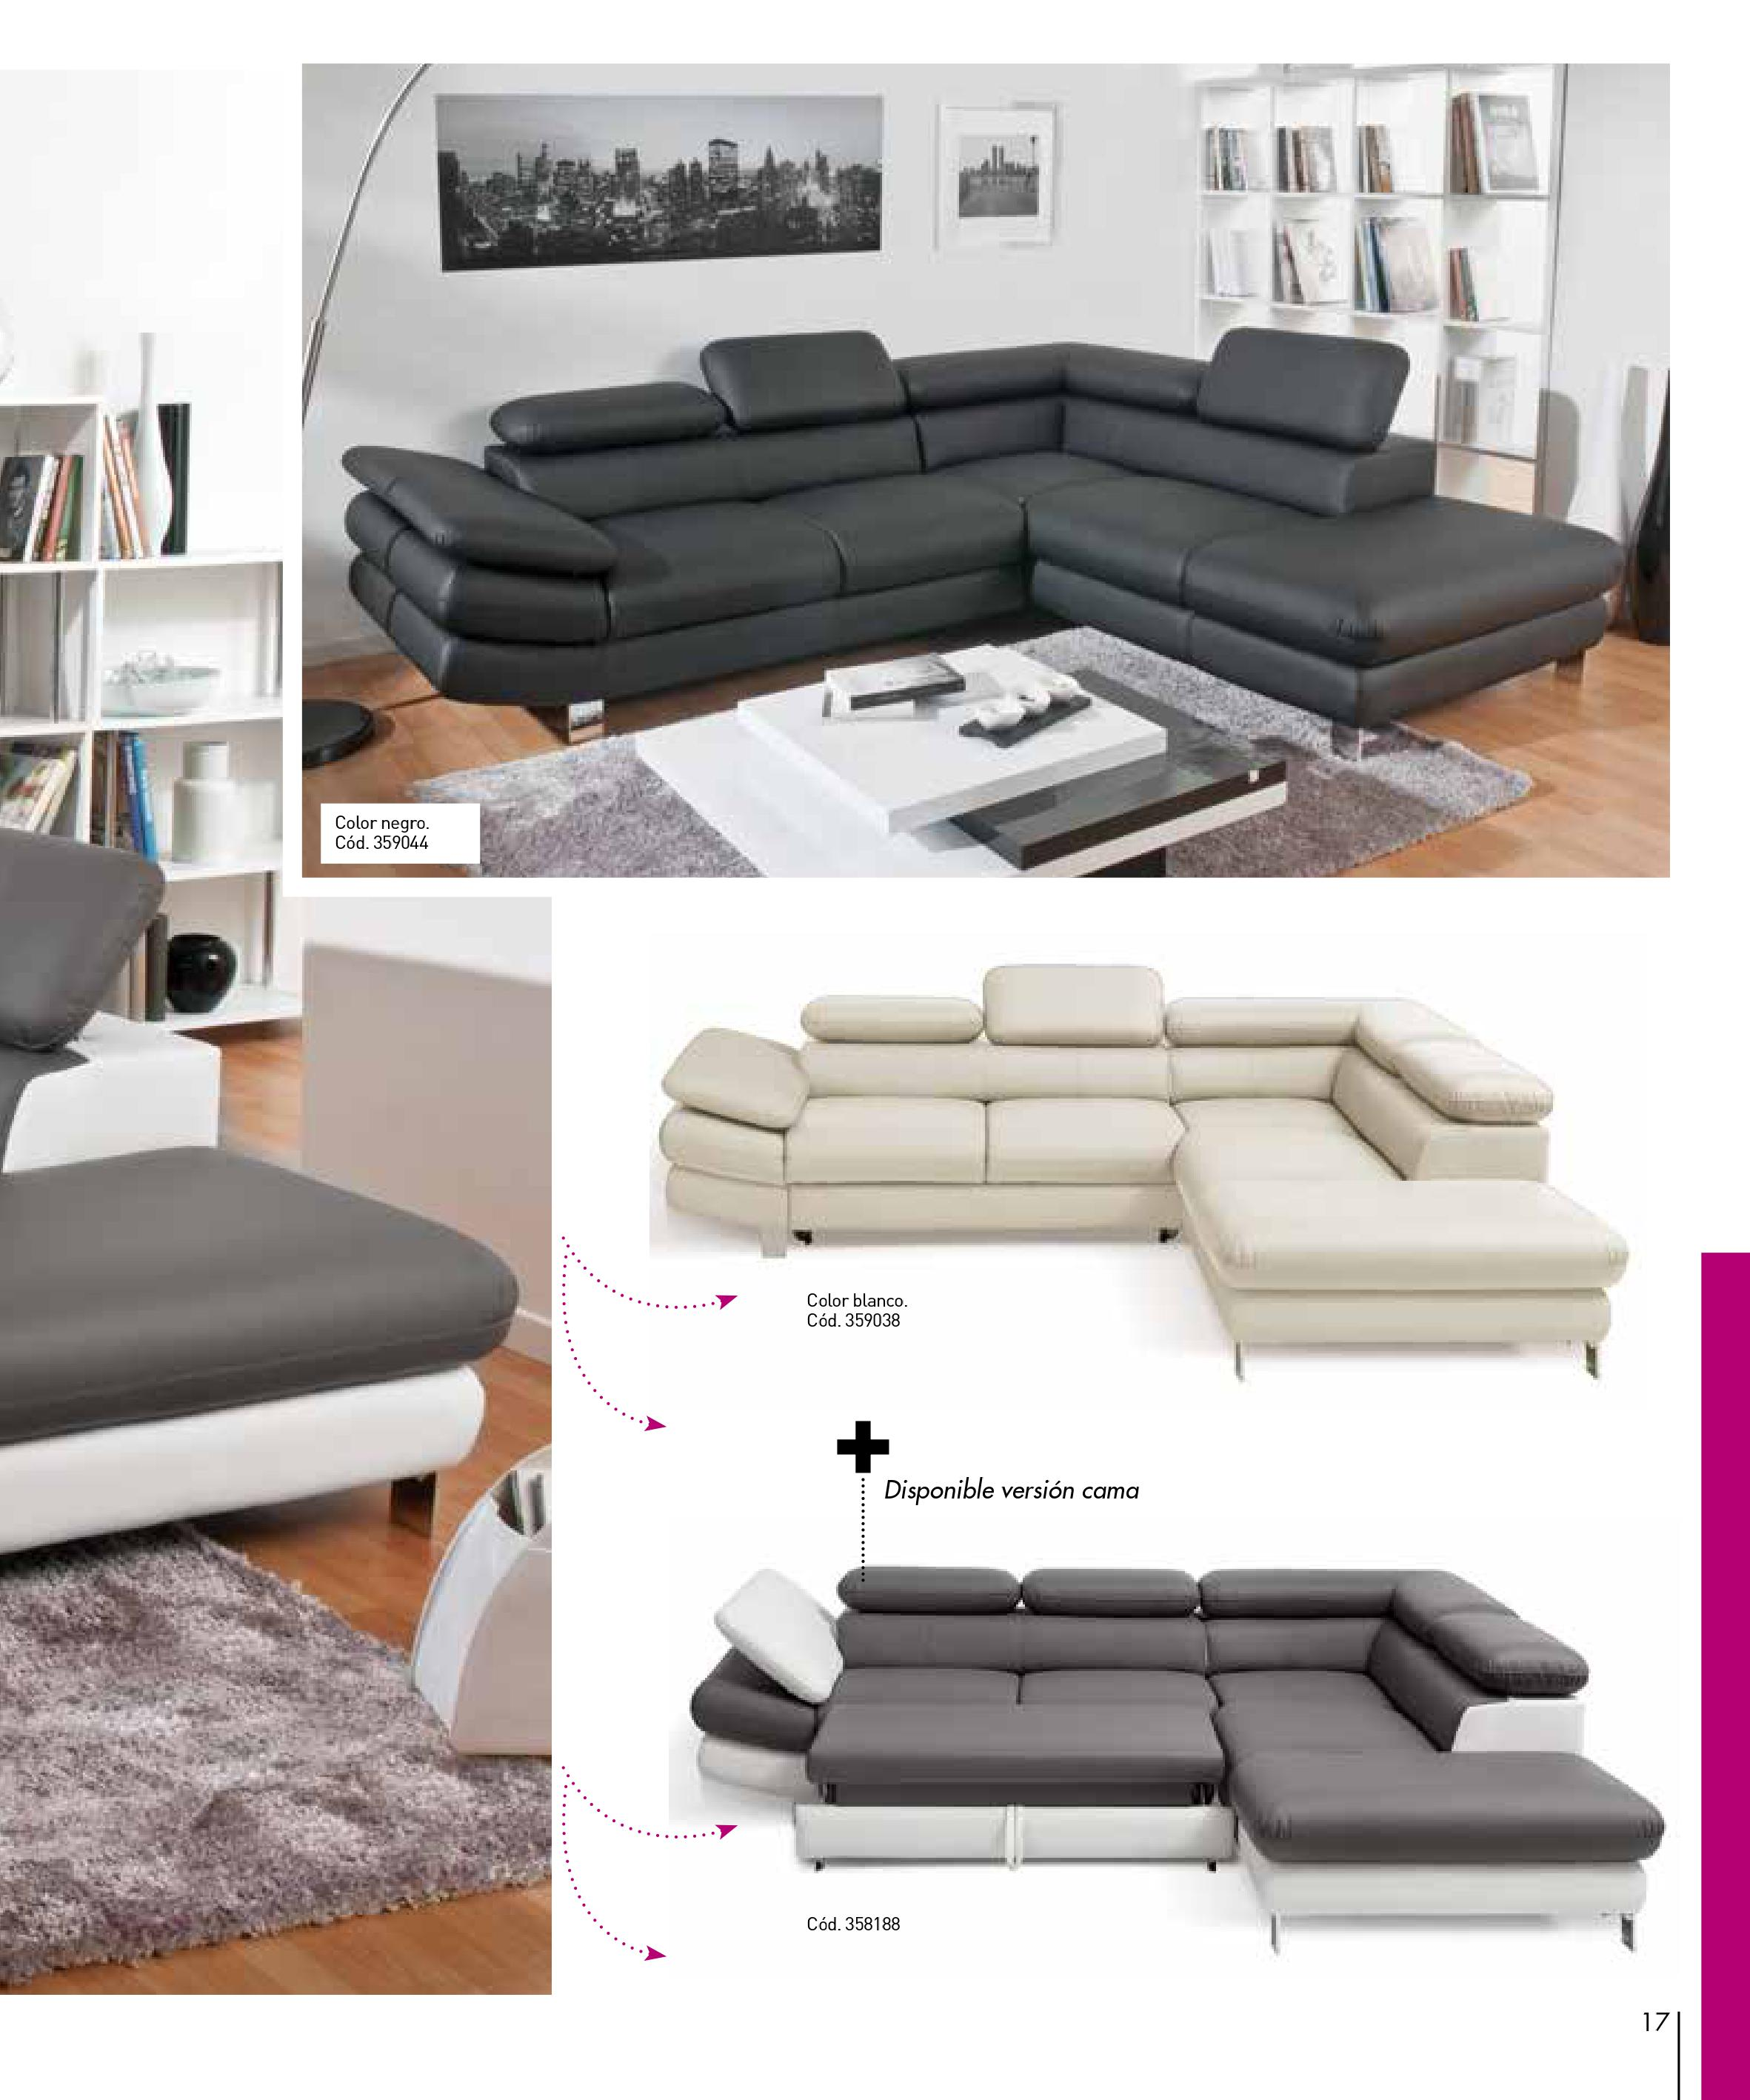 Sofas conforama 201517 for Sofas conforama catalogo